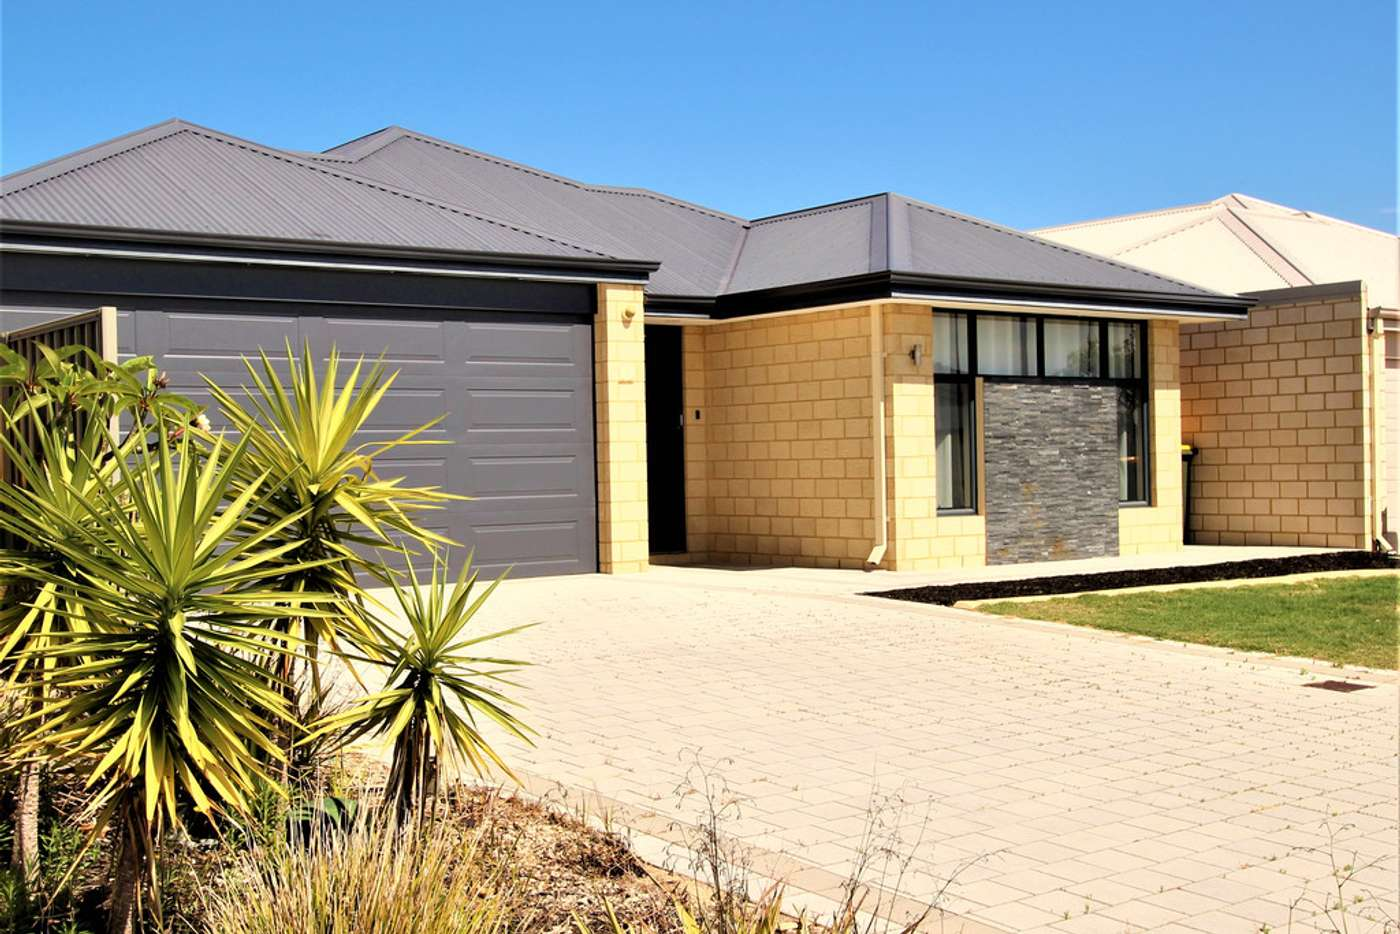 Main view of Homely house listing, 19 Barron Turn, South Yunderup WA 6208